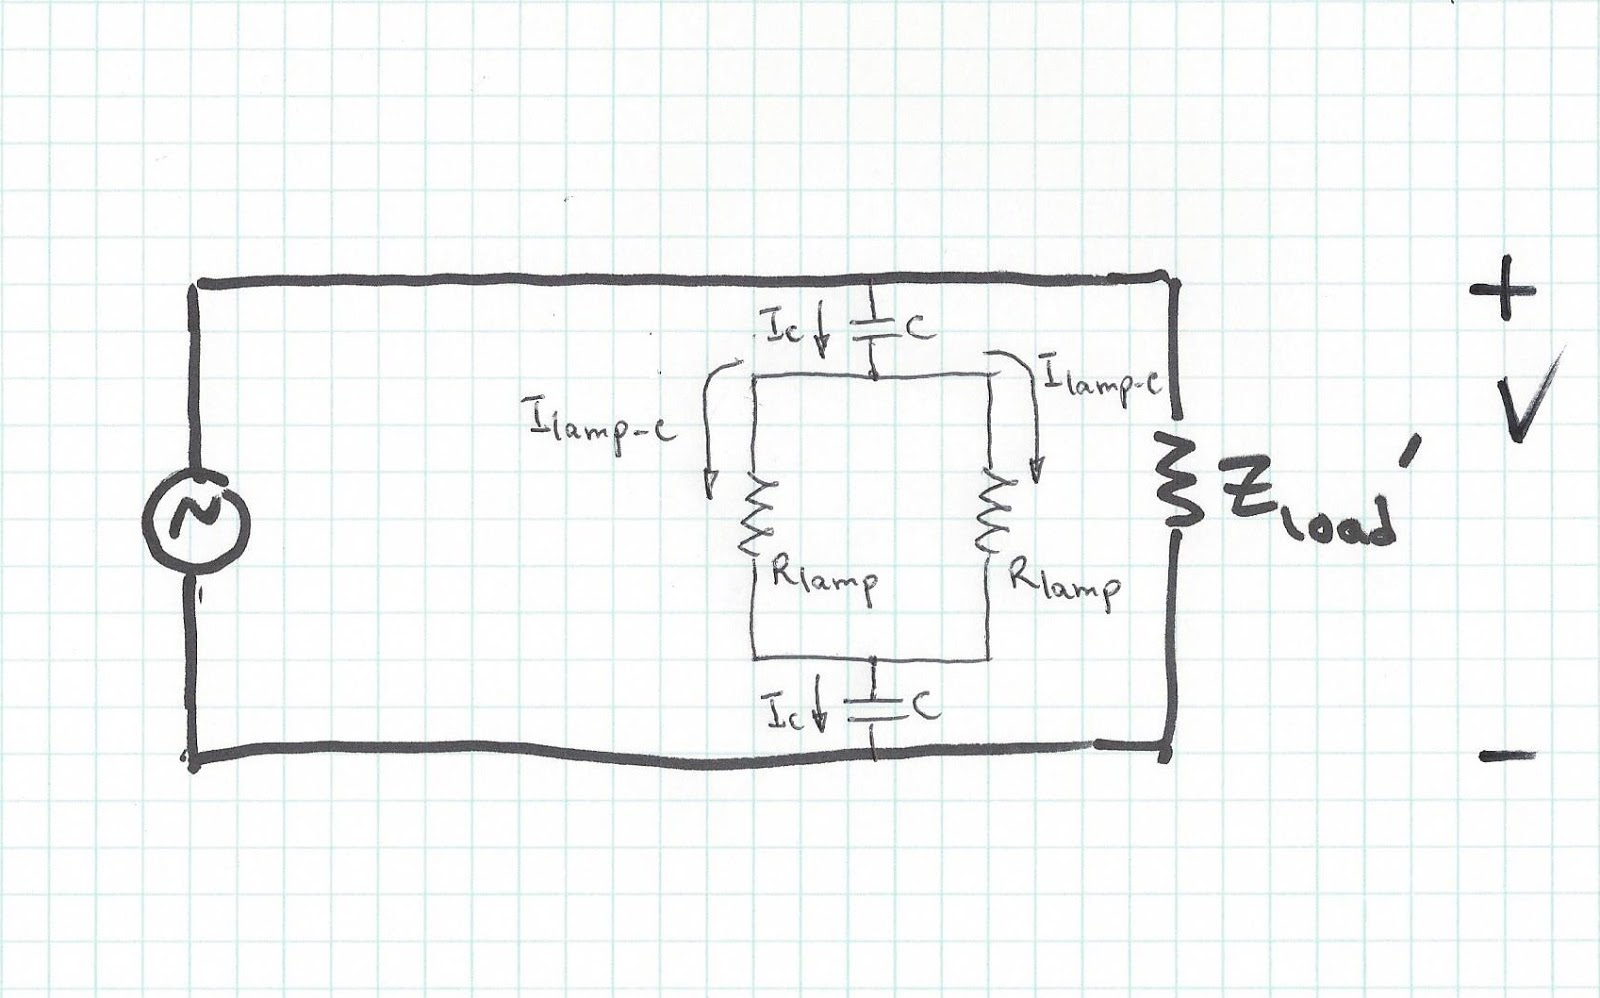 K6jca 2016 Voltdividercircuitdiagramgif 3190 Bytes The Circuit Is A Simple Voltage Divider And Thus Current Ic Equal To Across Line At That Point Divided By Sum Of